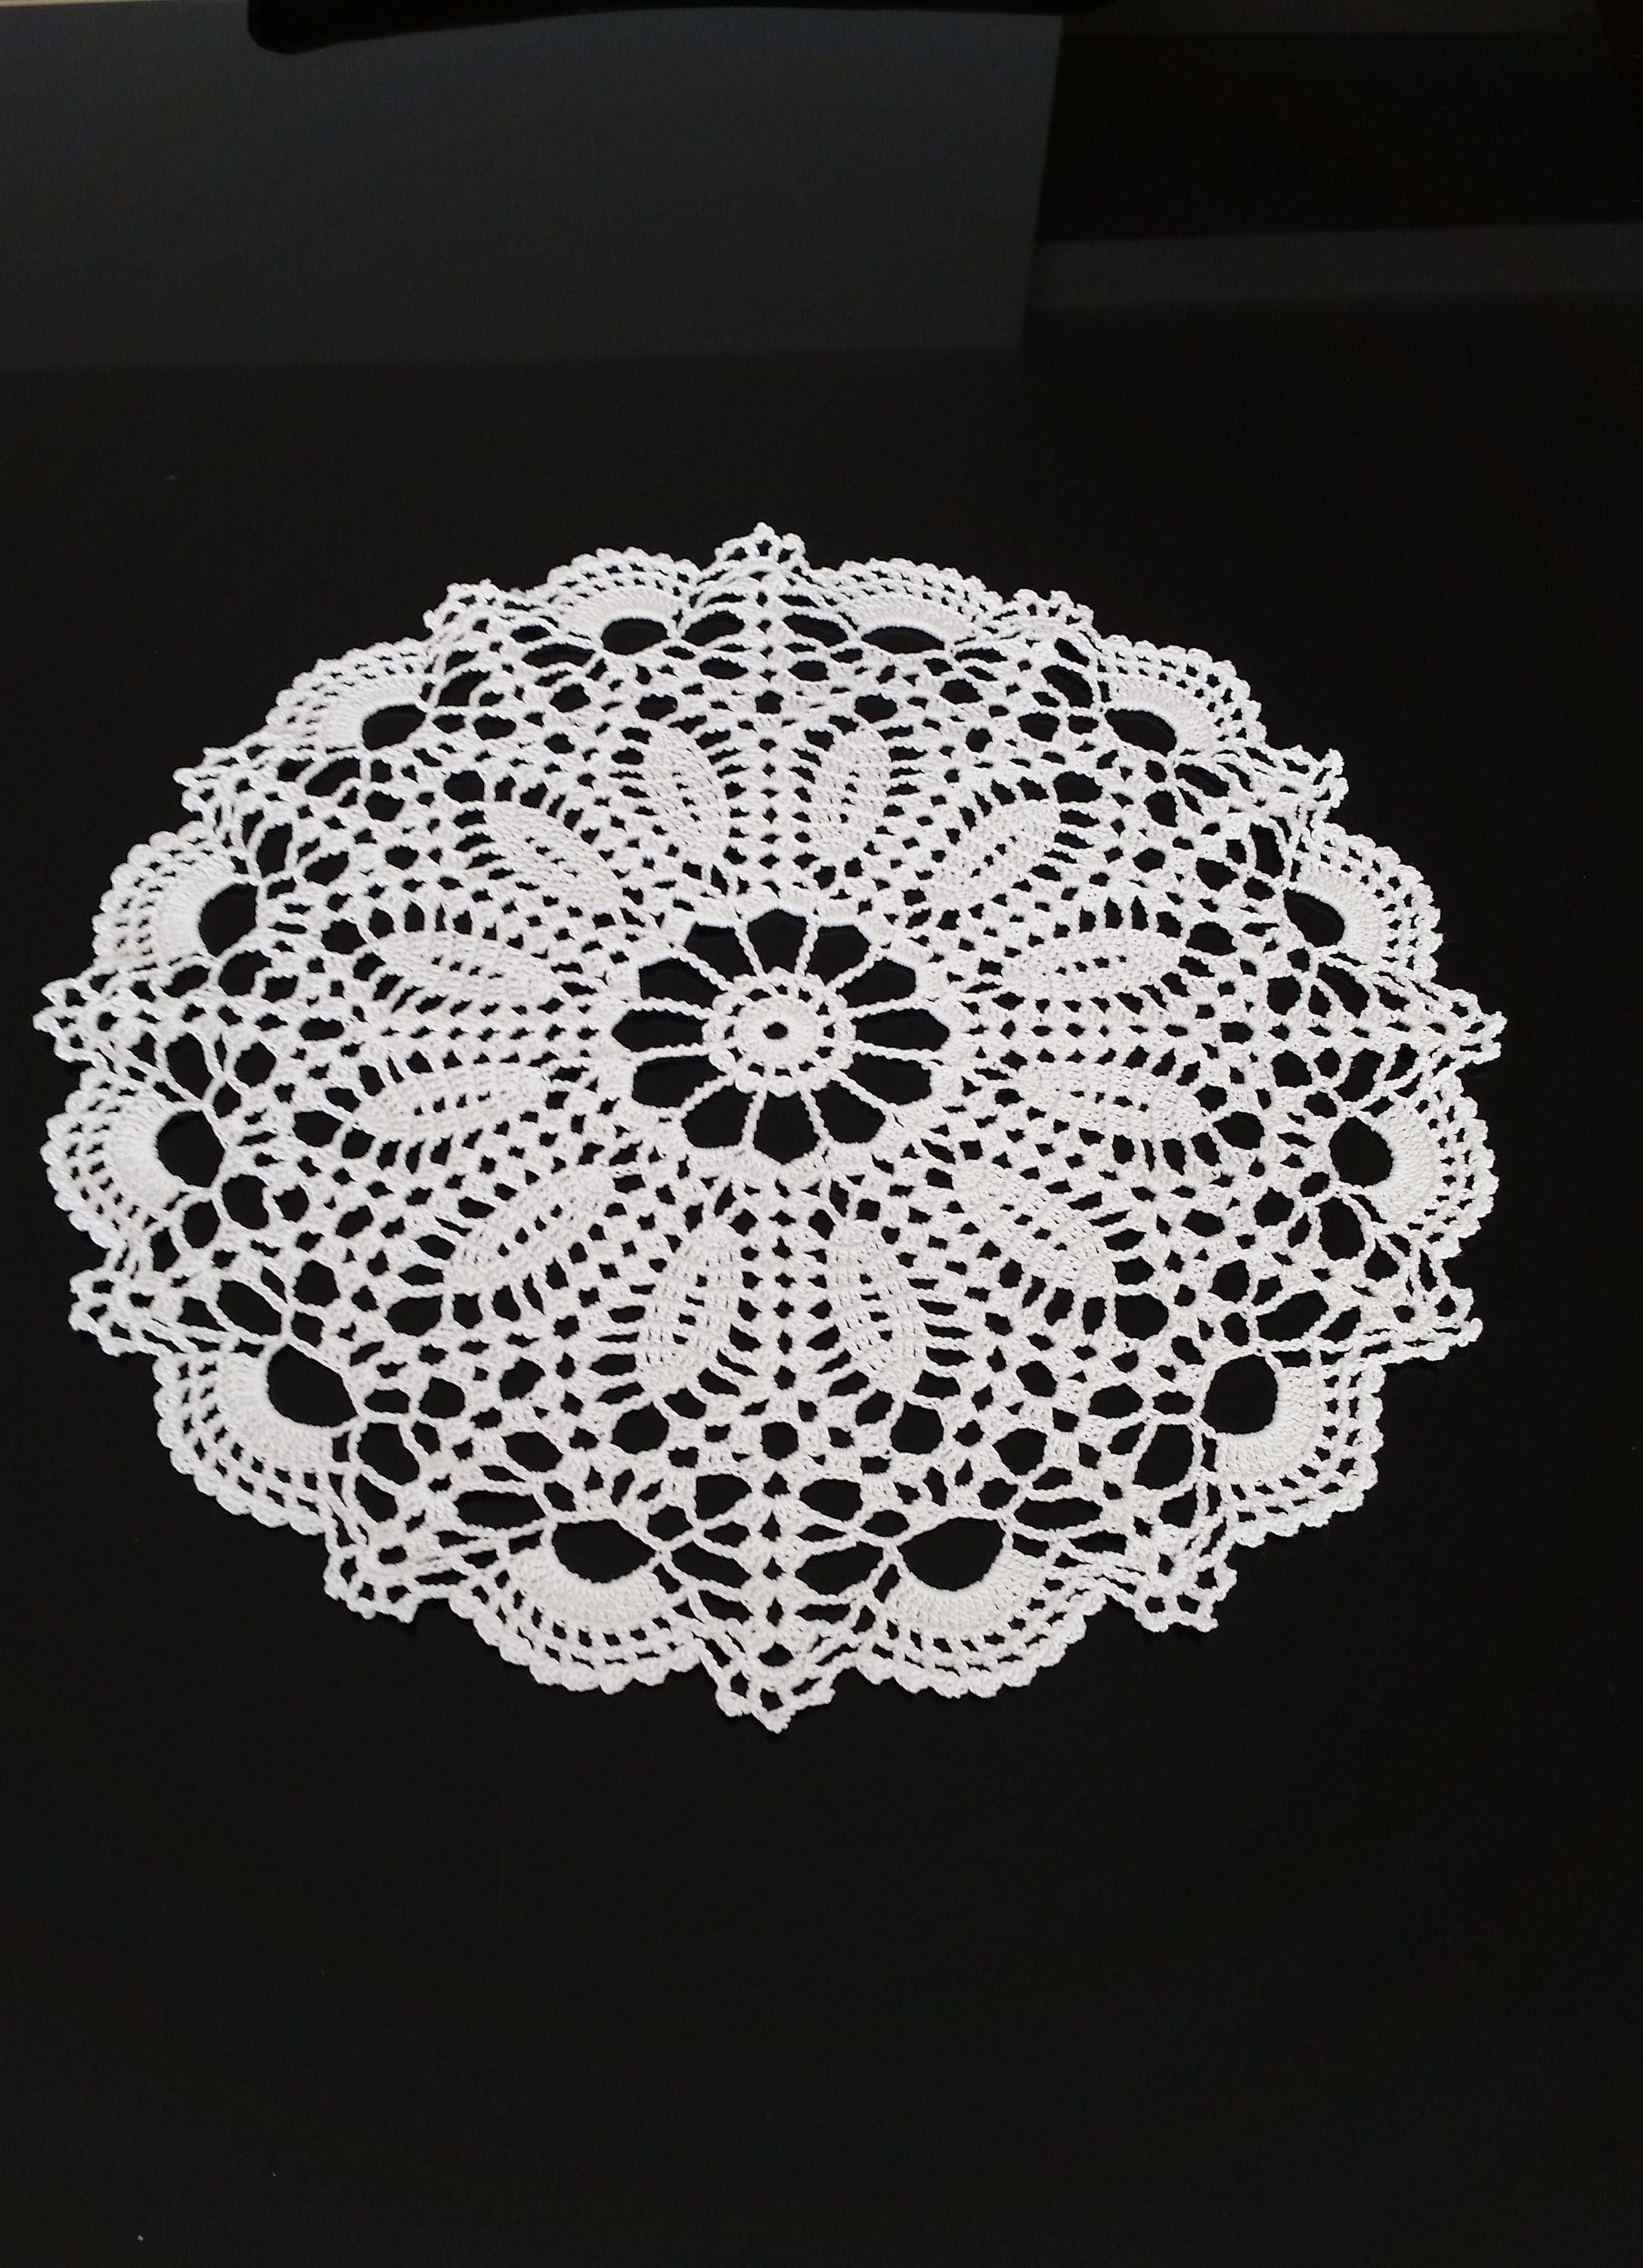 29 Cm 115 Inches Crocheted Doily Crochet Doily White Doilie